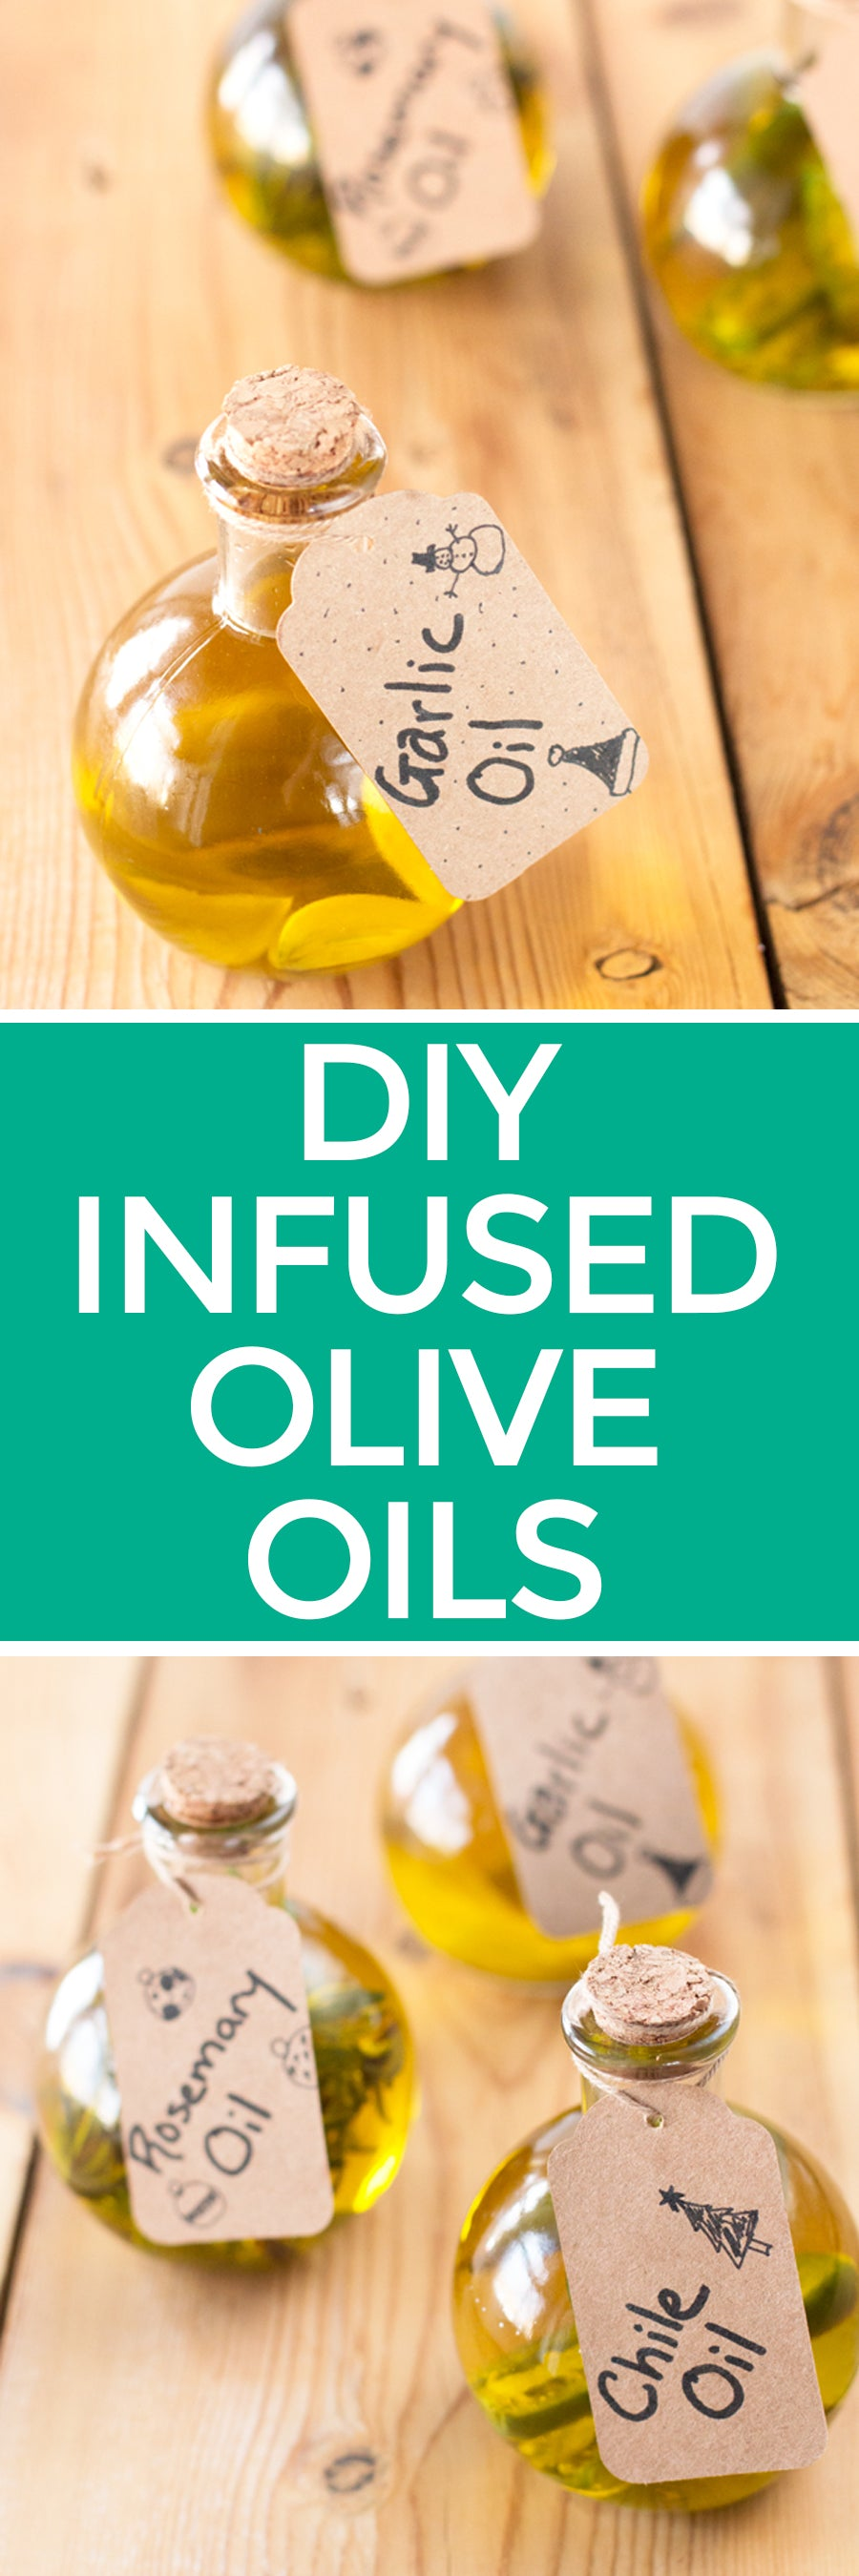 DIY Infused Olive Oils | pigofthemonth.com